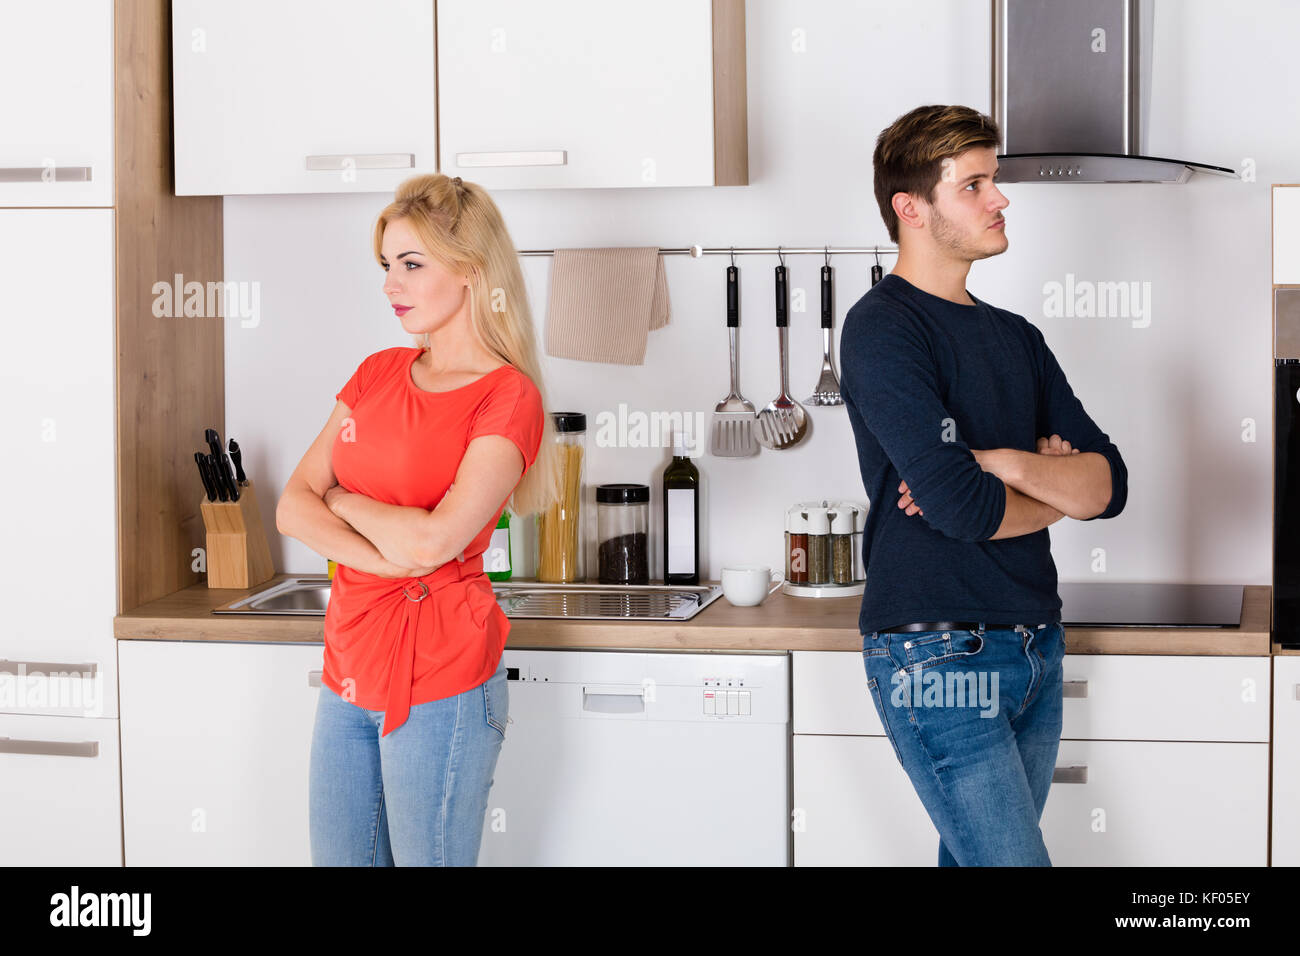 Sad Young Couple With Relationship Difficulties Talking About Infidelity And Divorce In Kitchen - Stock Image